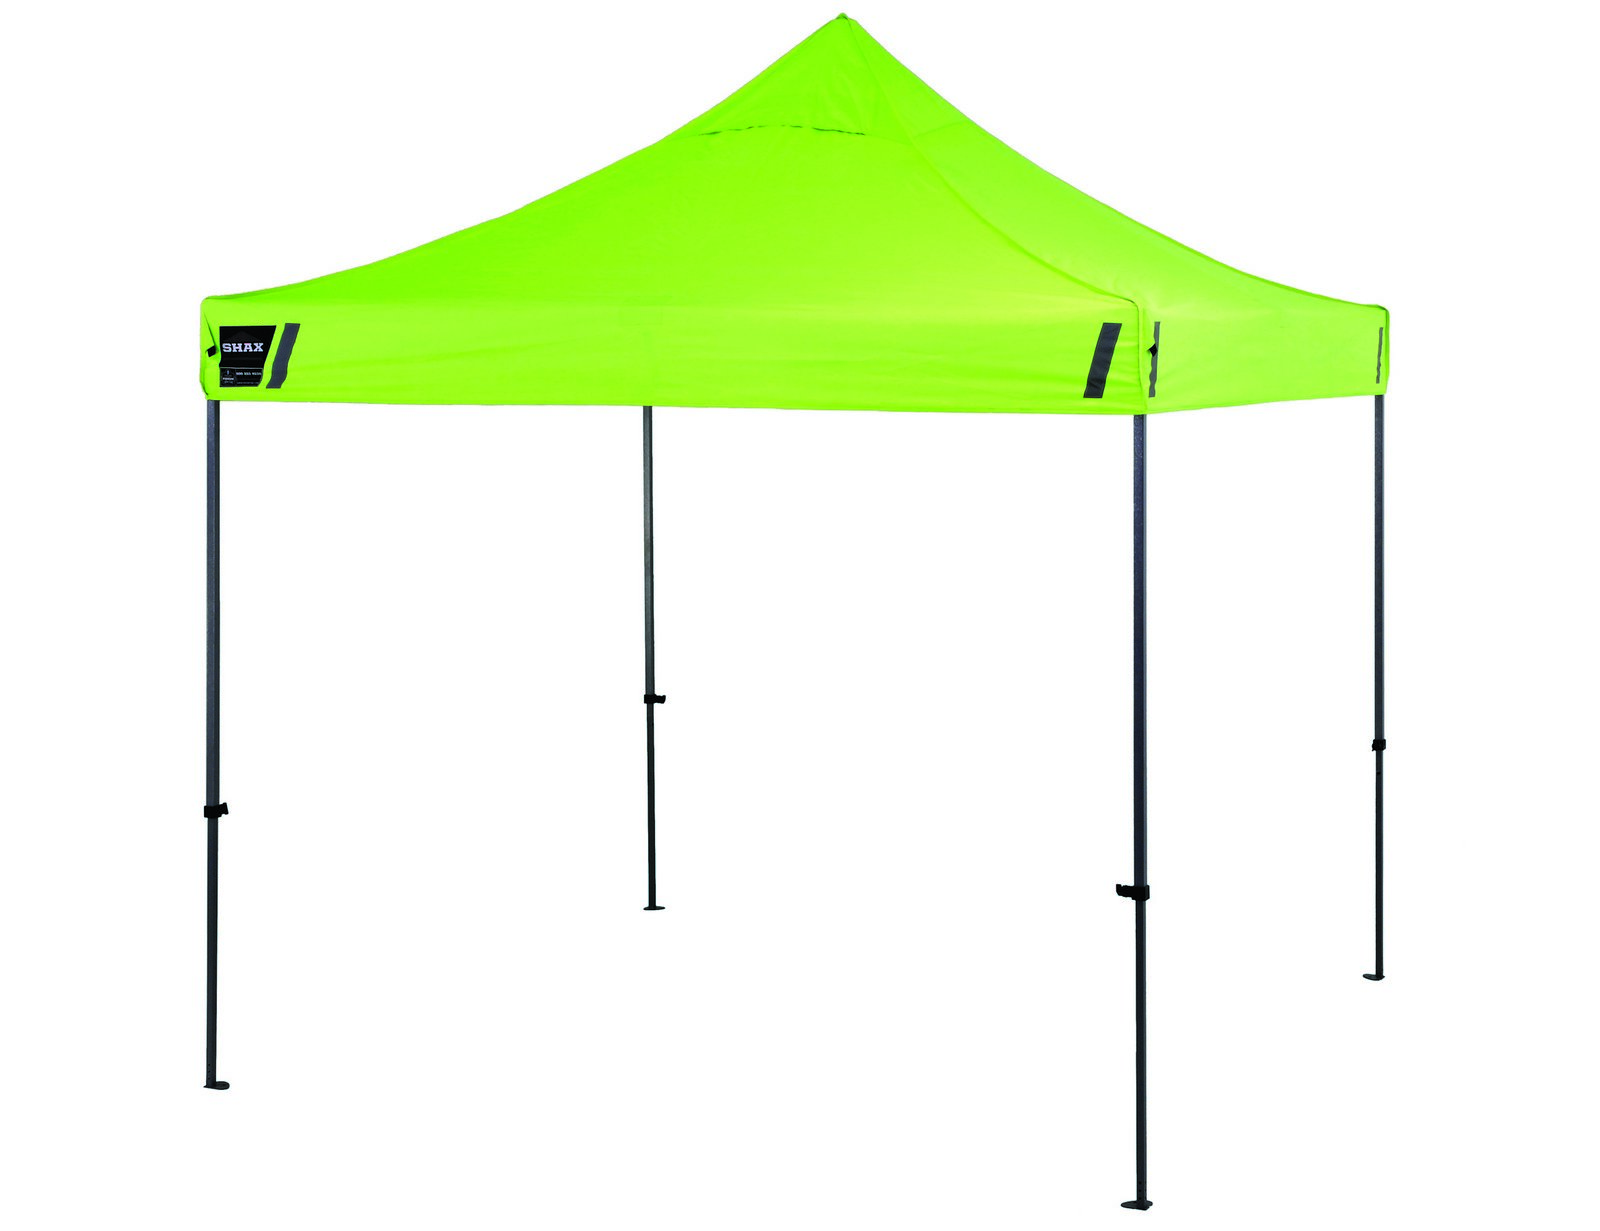 SHAX® 6000 Portable Utility Tent